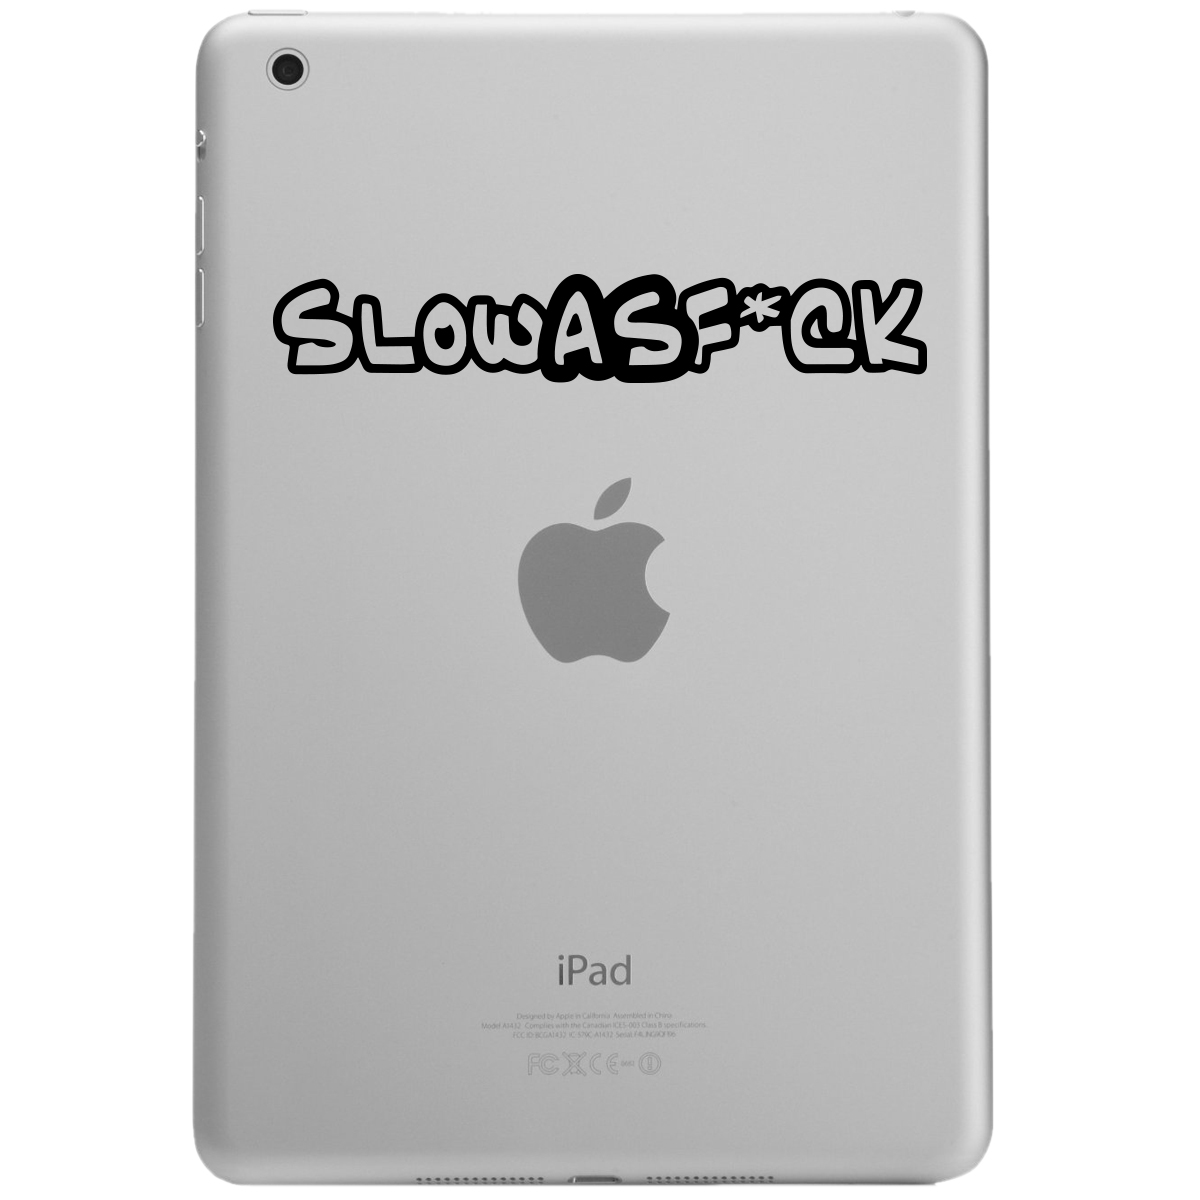 Funny JDM Slow as F*ck iPad Tablet Vinyl Sticker Decal